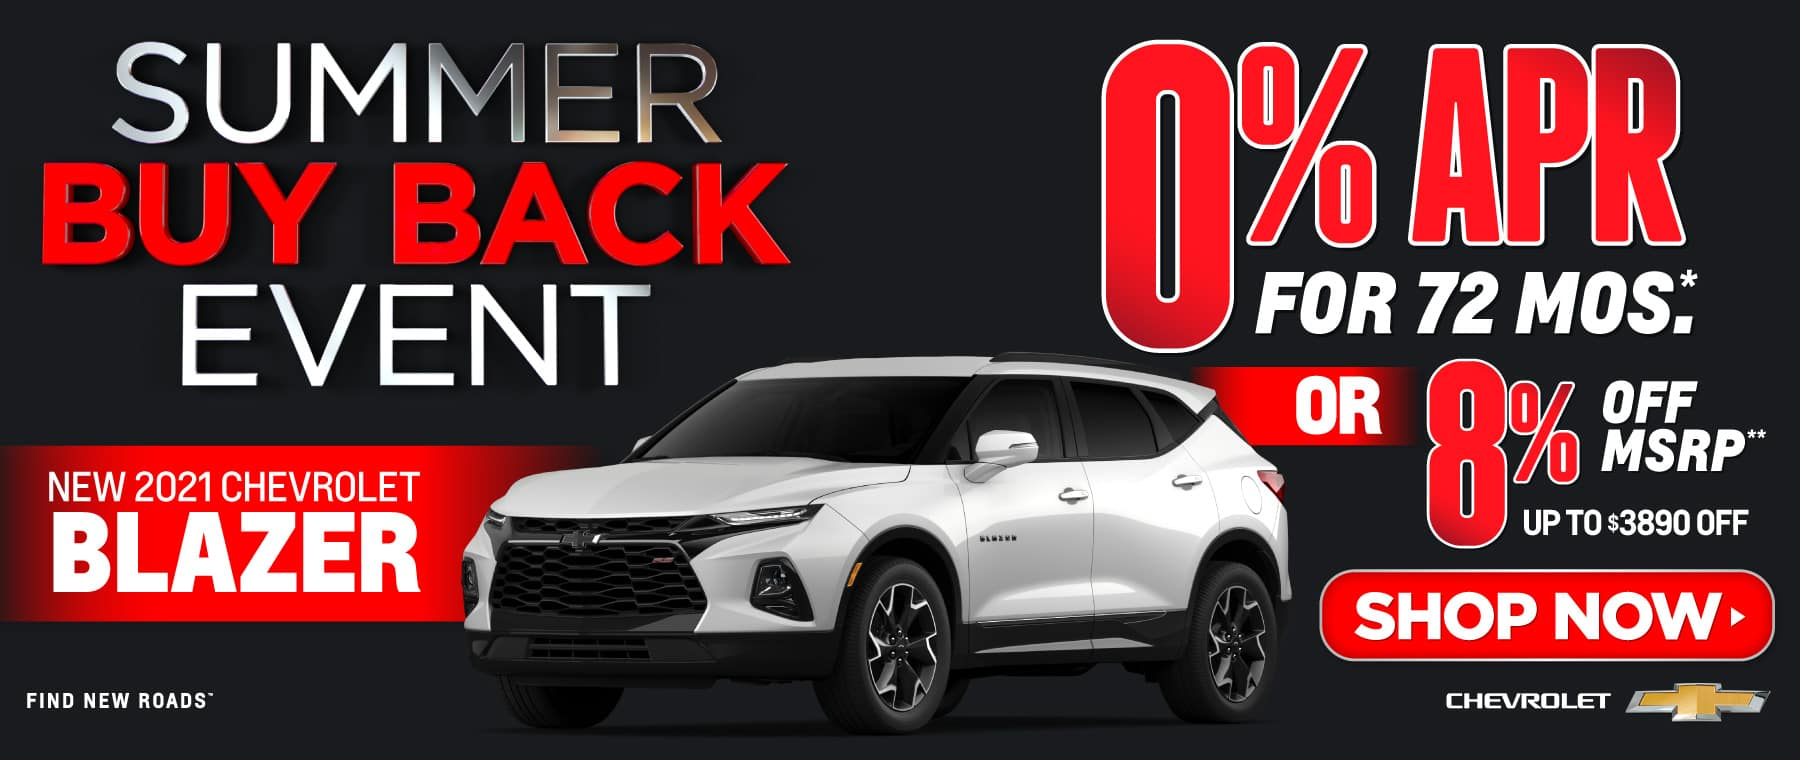 New 2021 Chevy Blazer - 0% APR for 72 months - Act now